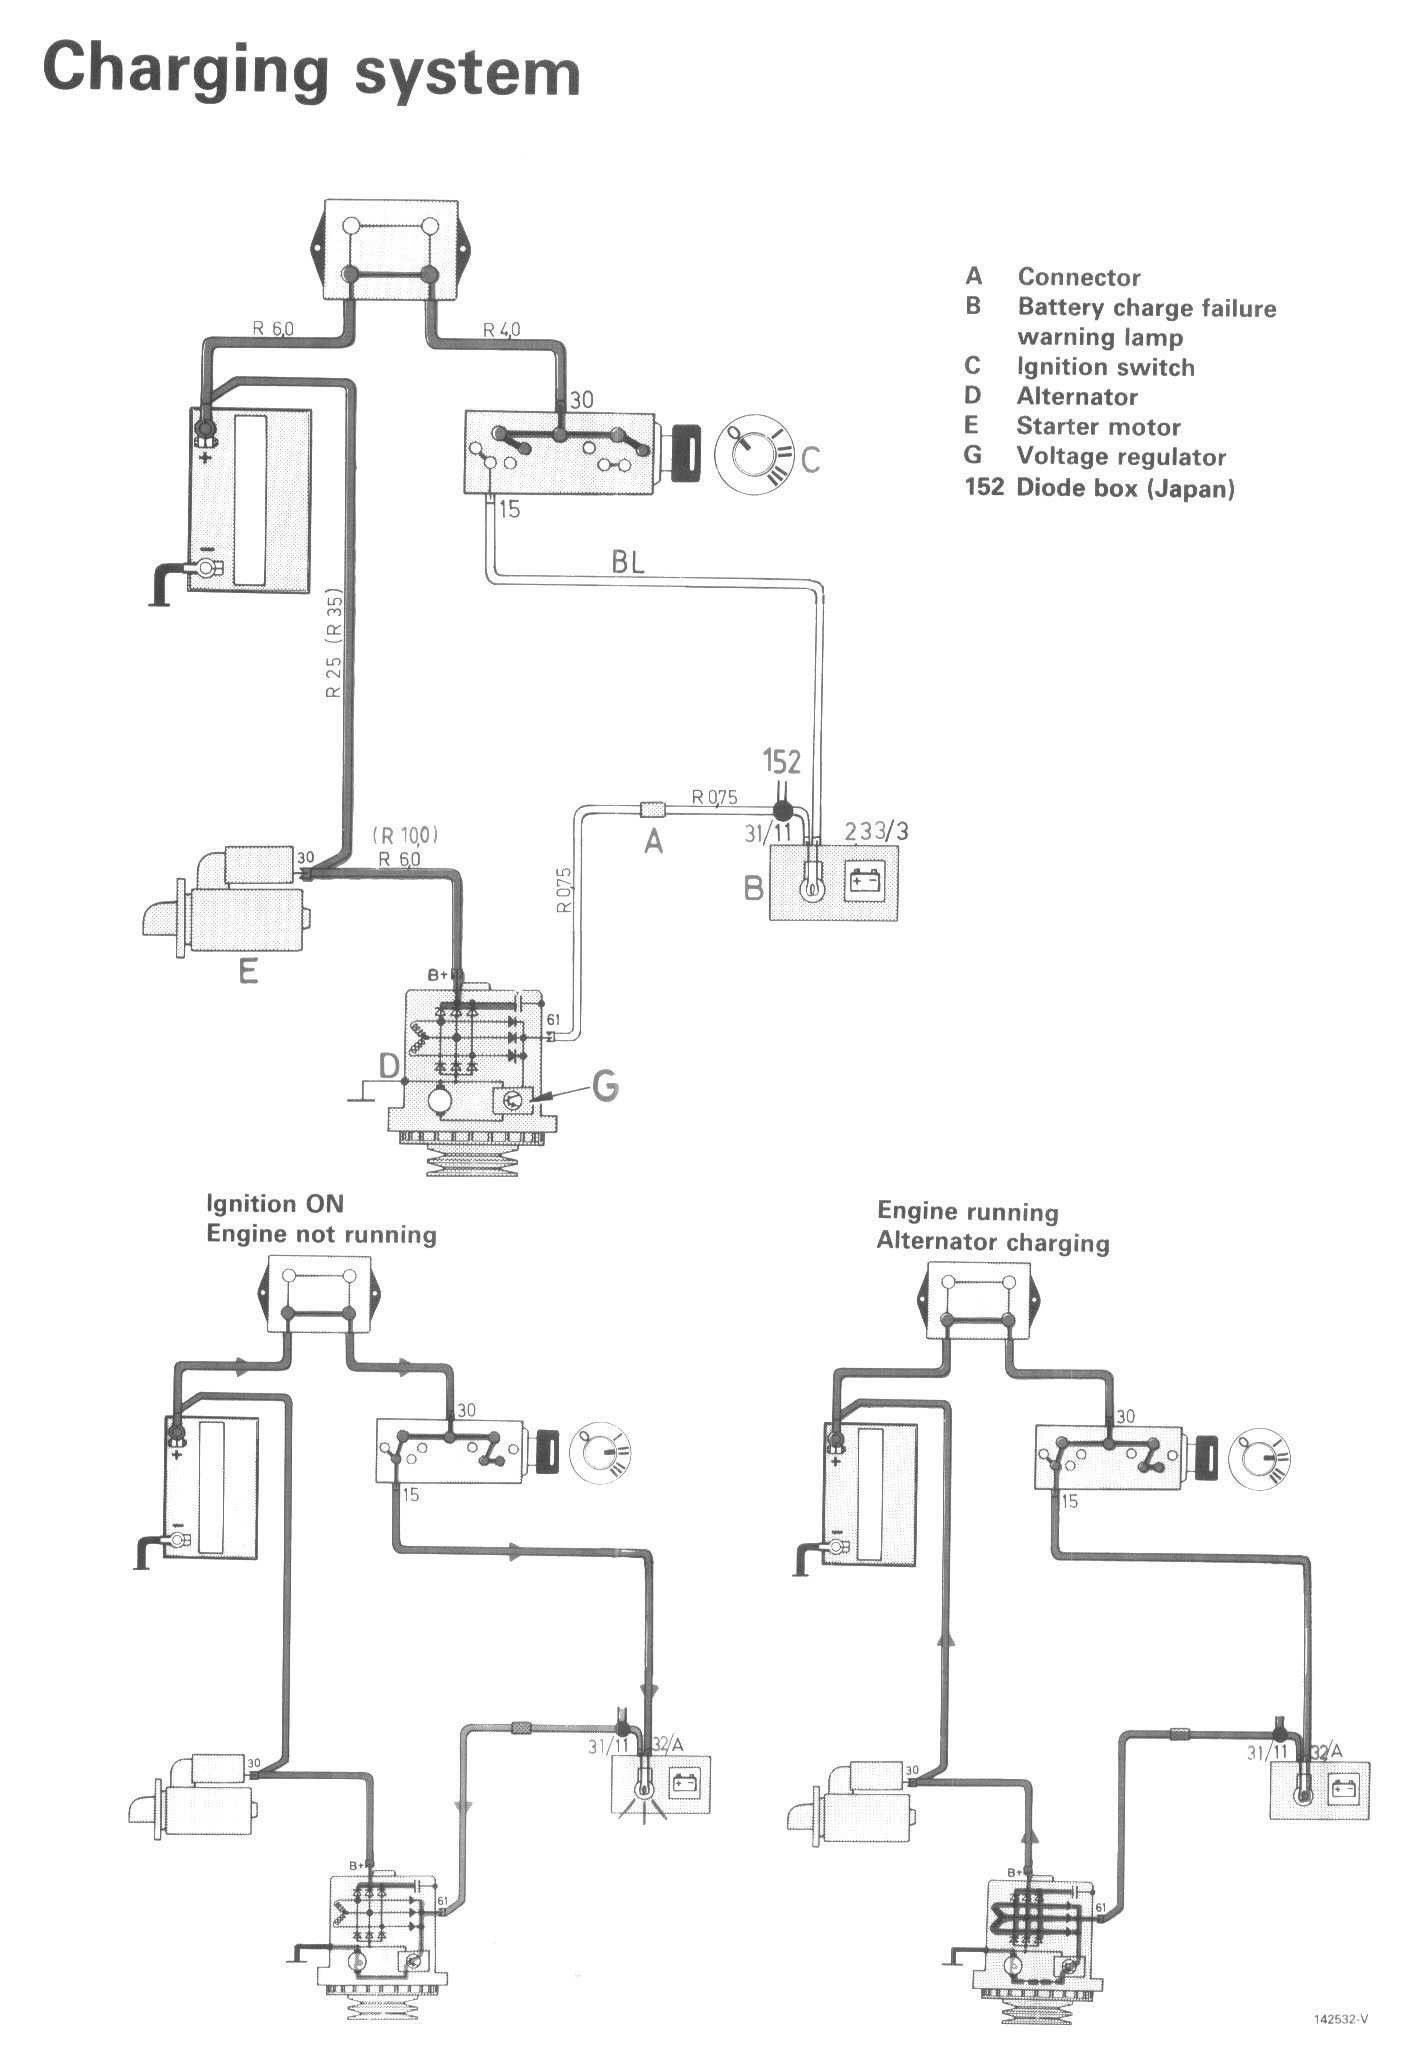 medium resolution of volvo penta outdrive wiring diagram 2 sx parts domainadvice org